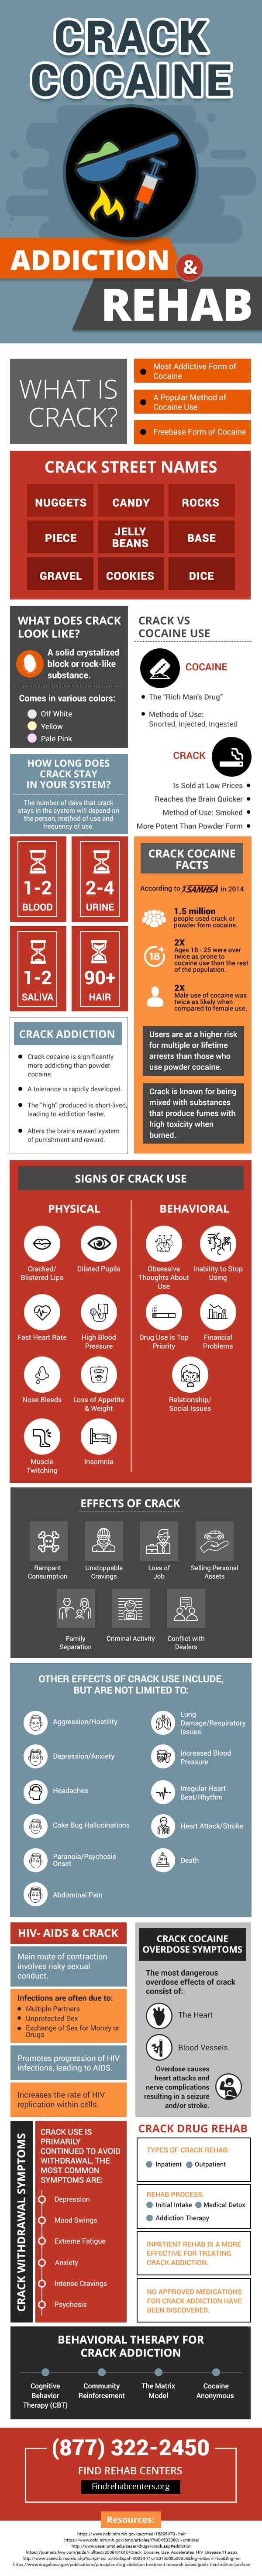 Crack Cocaine Addiction and Rehab Infographic